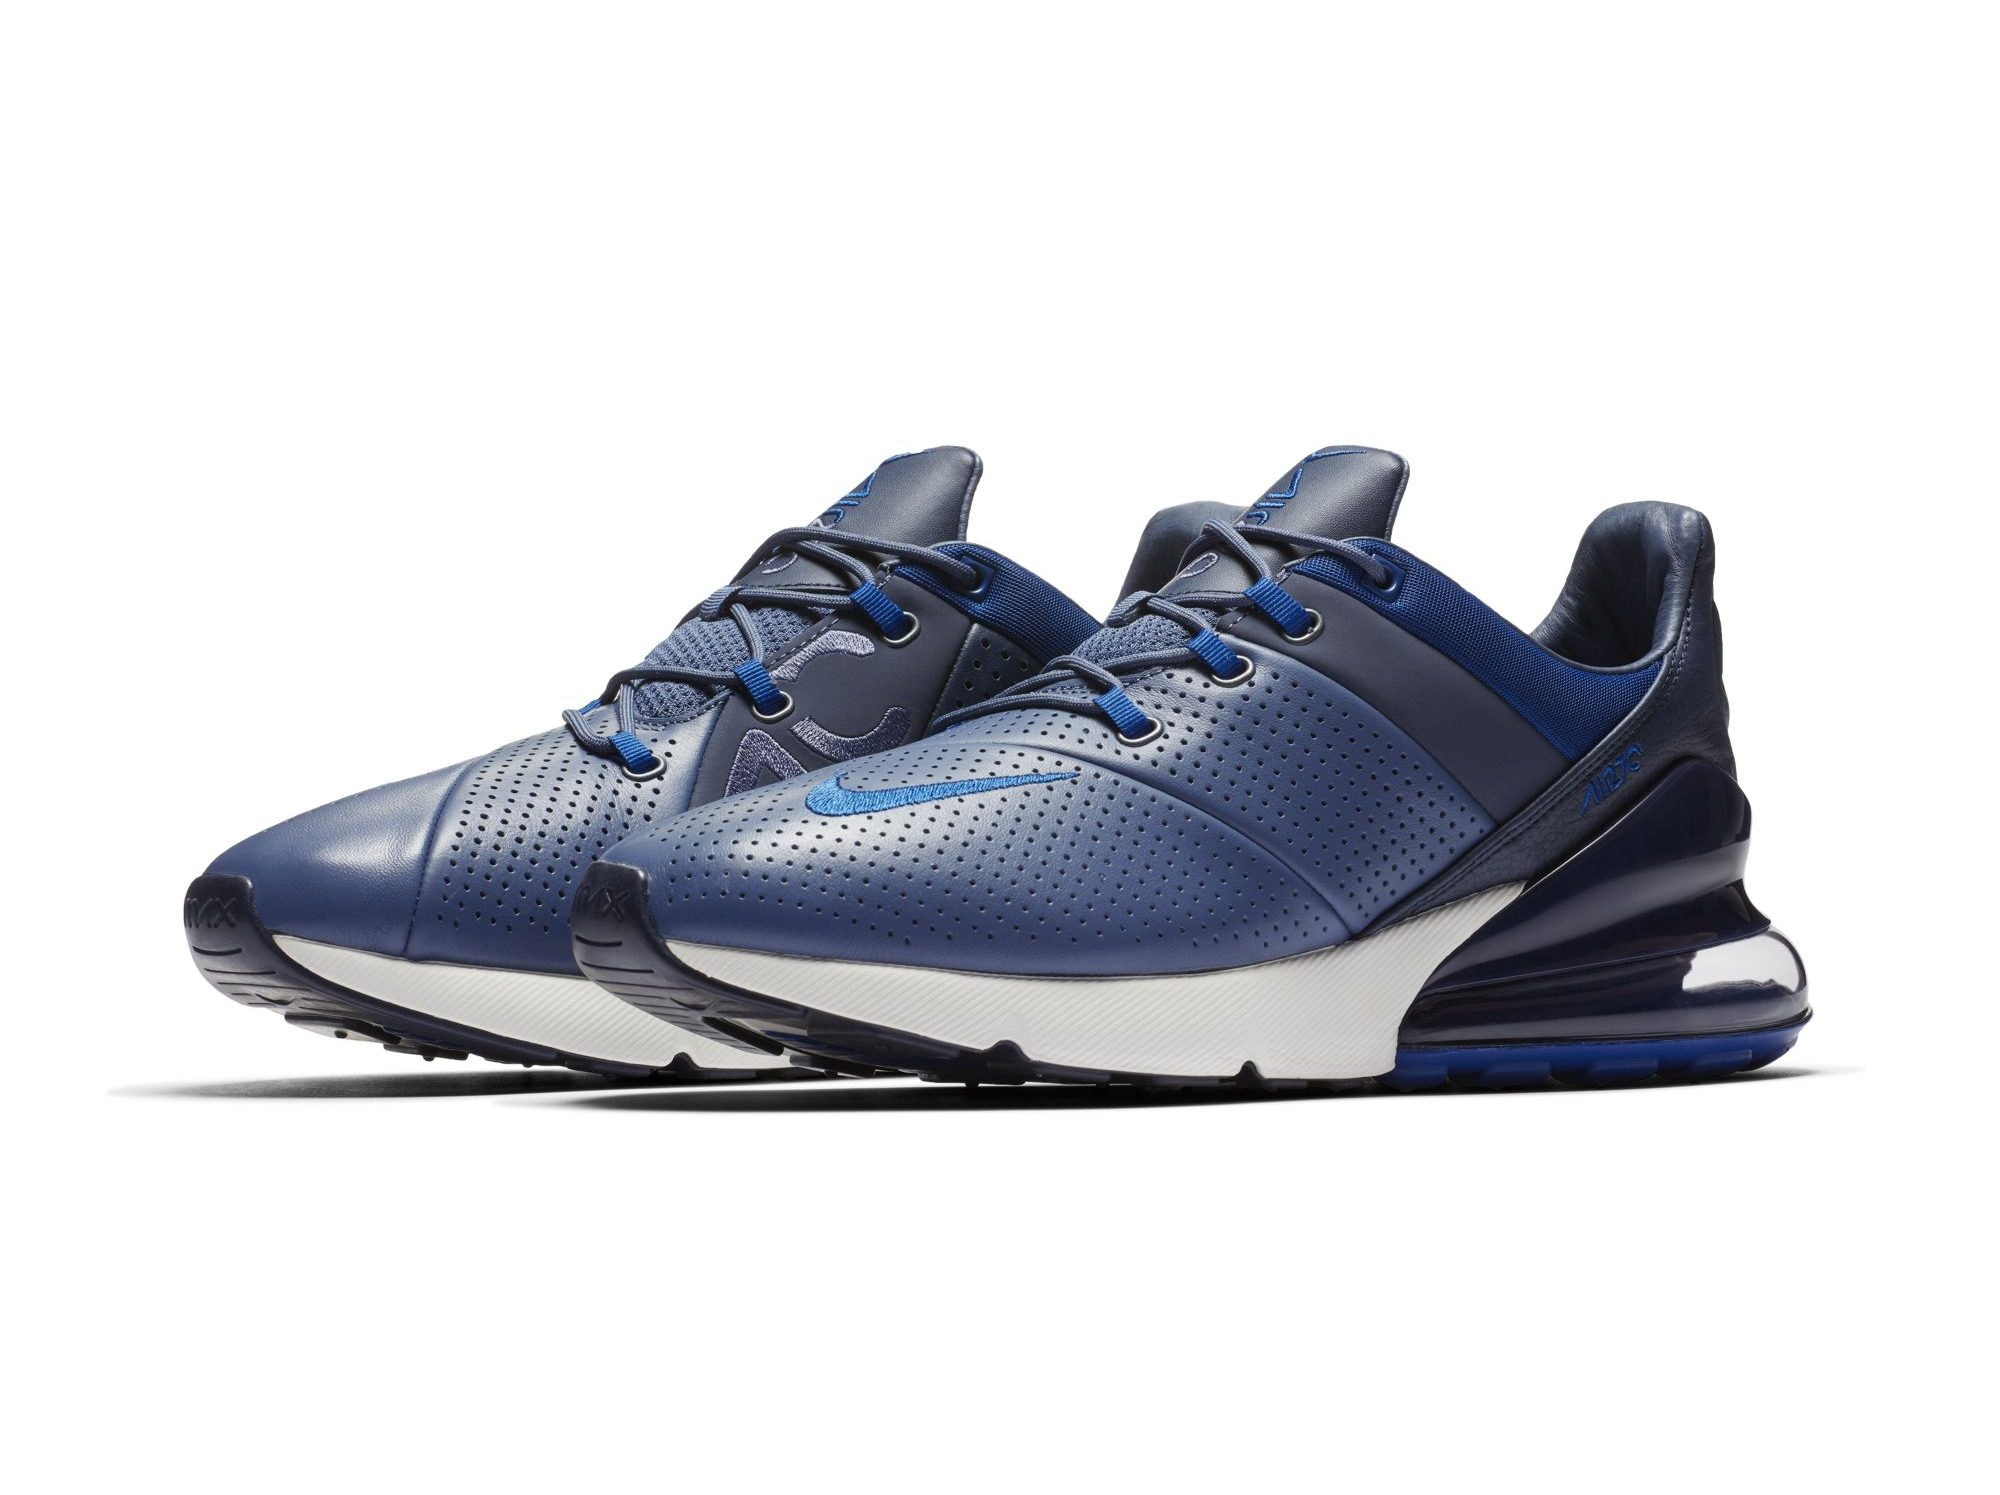 lowest price 64463 2e2d9 The Nike Air Max 270 Premium Flaunts Perforated Leather and ...